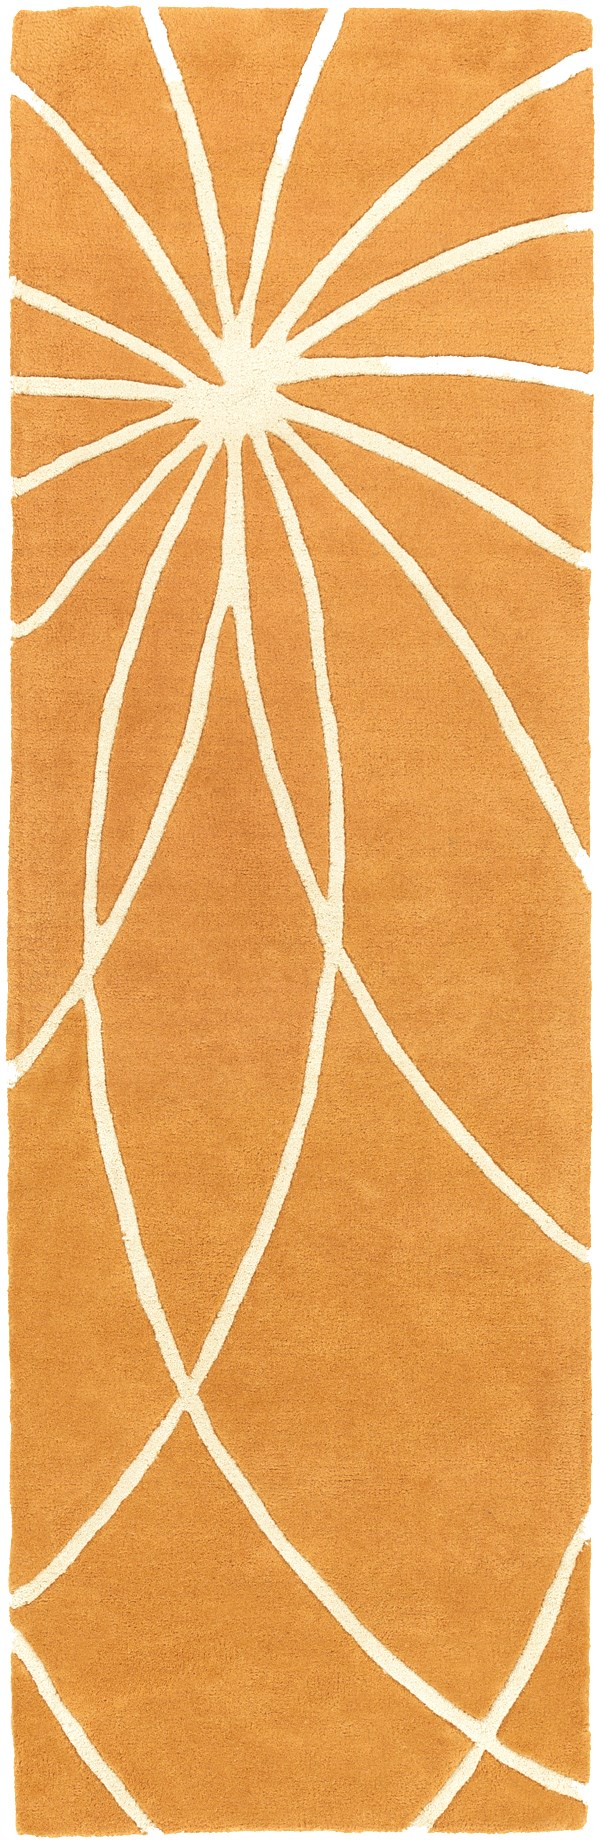 Carmine, Antique White Contemporary / Modern Area Rug